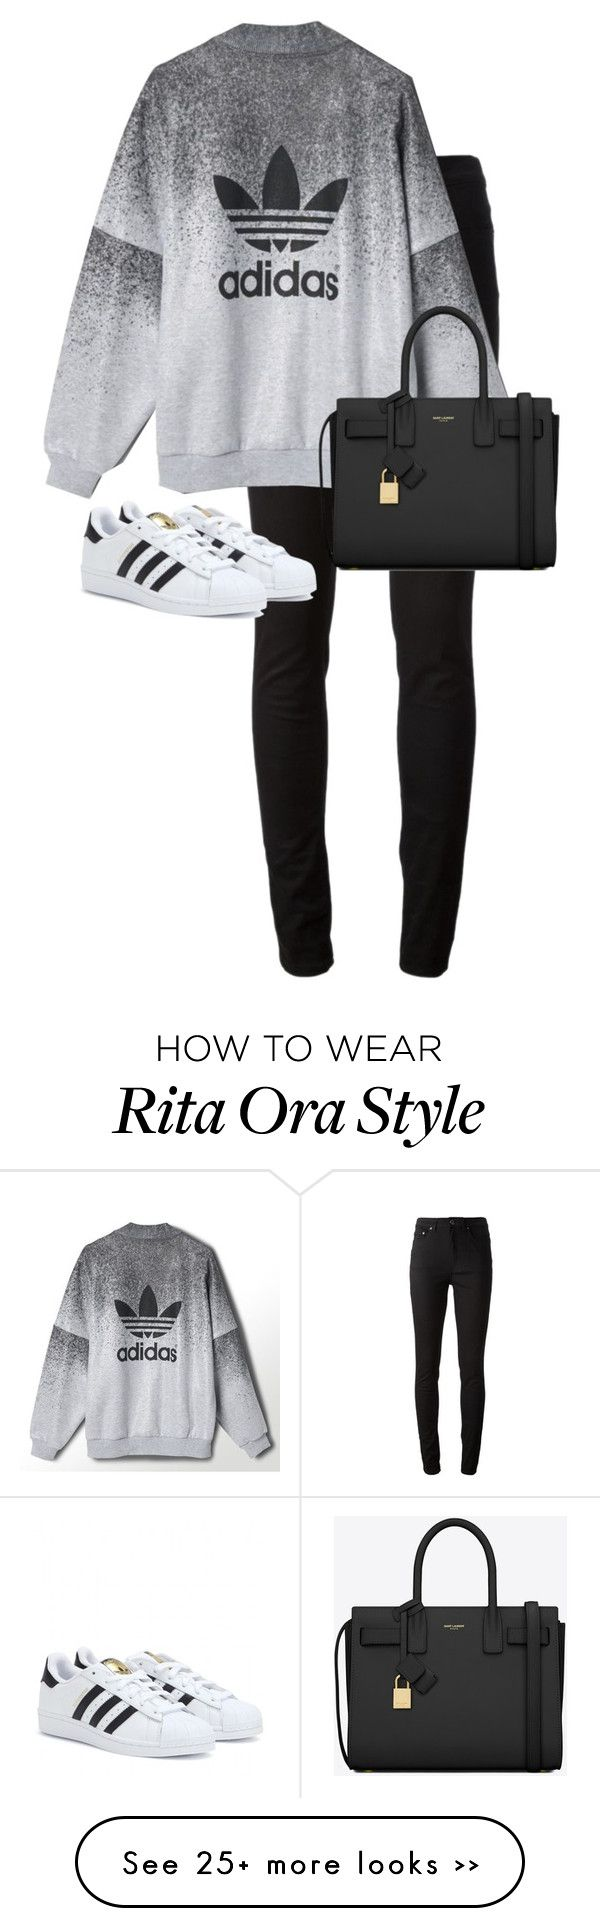 """Untitled #9205"" by alexsrogers on Polyvore"